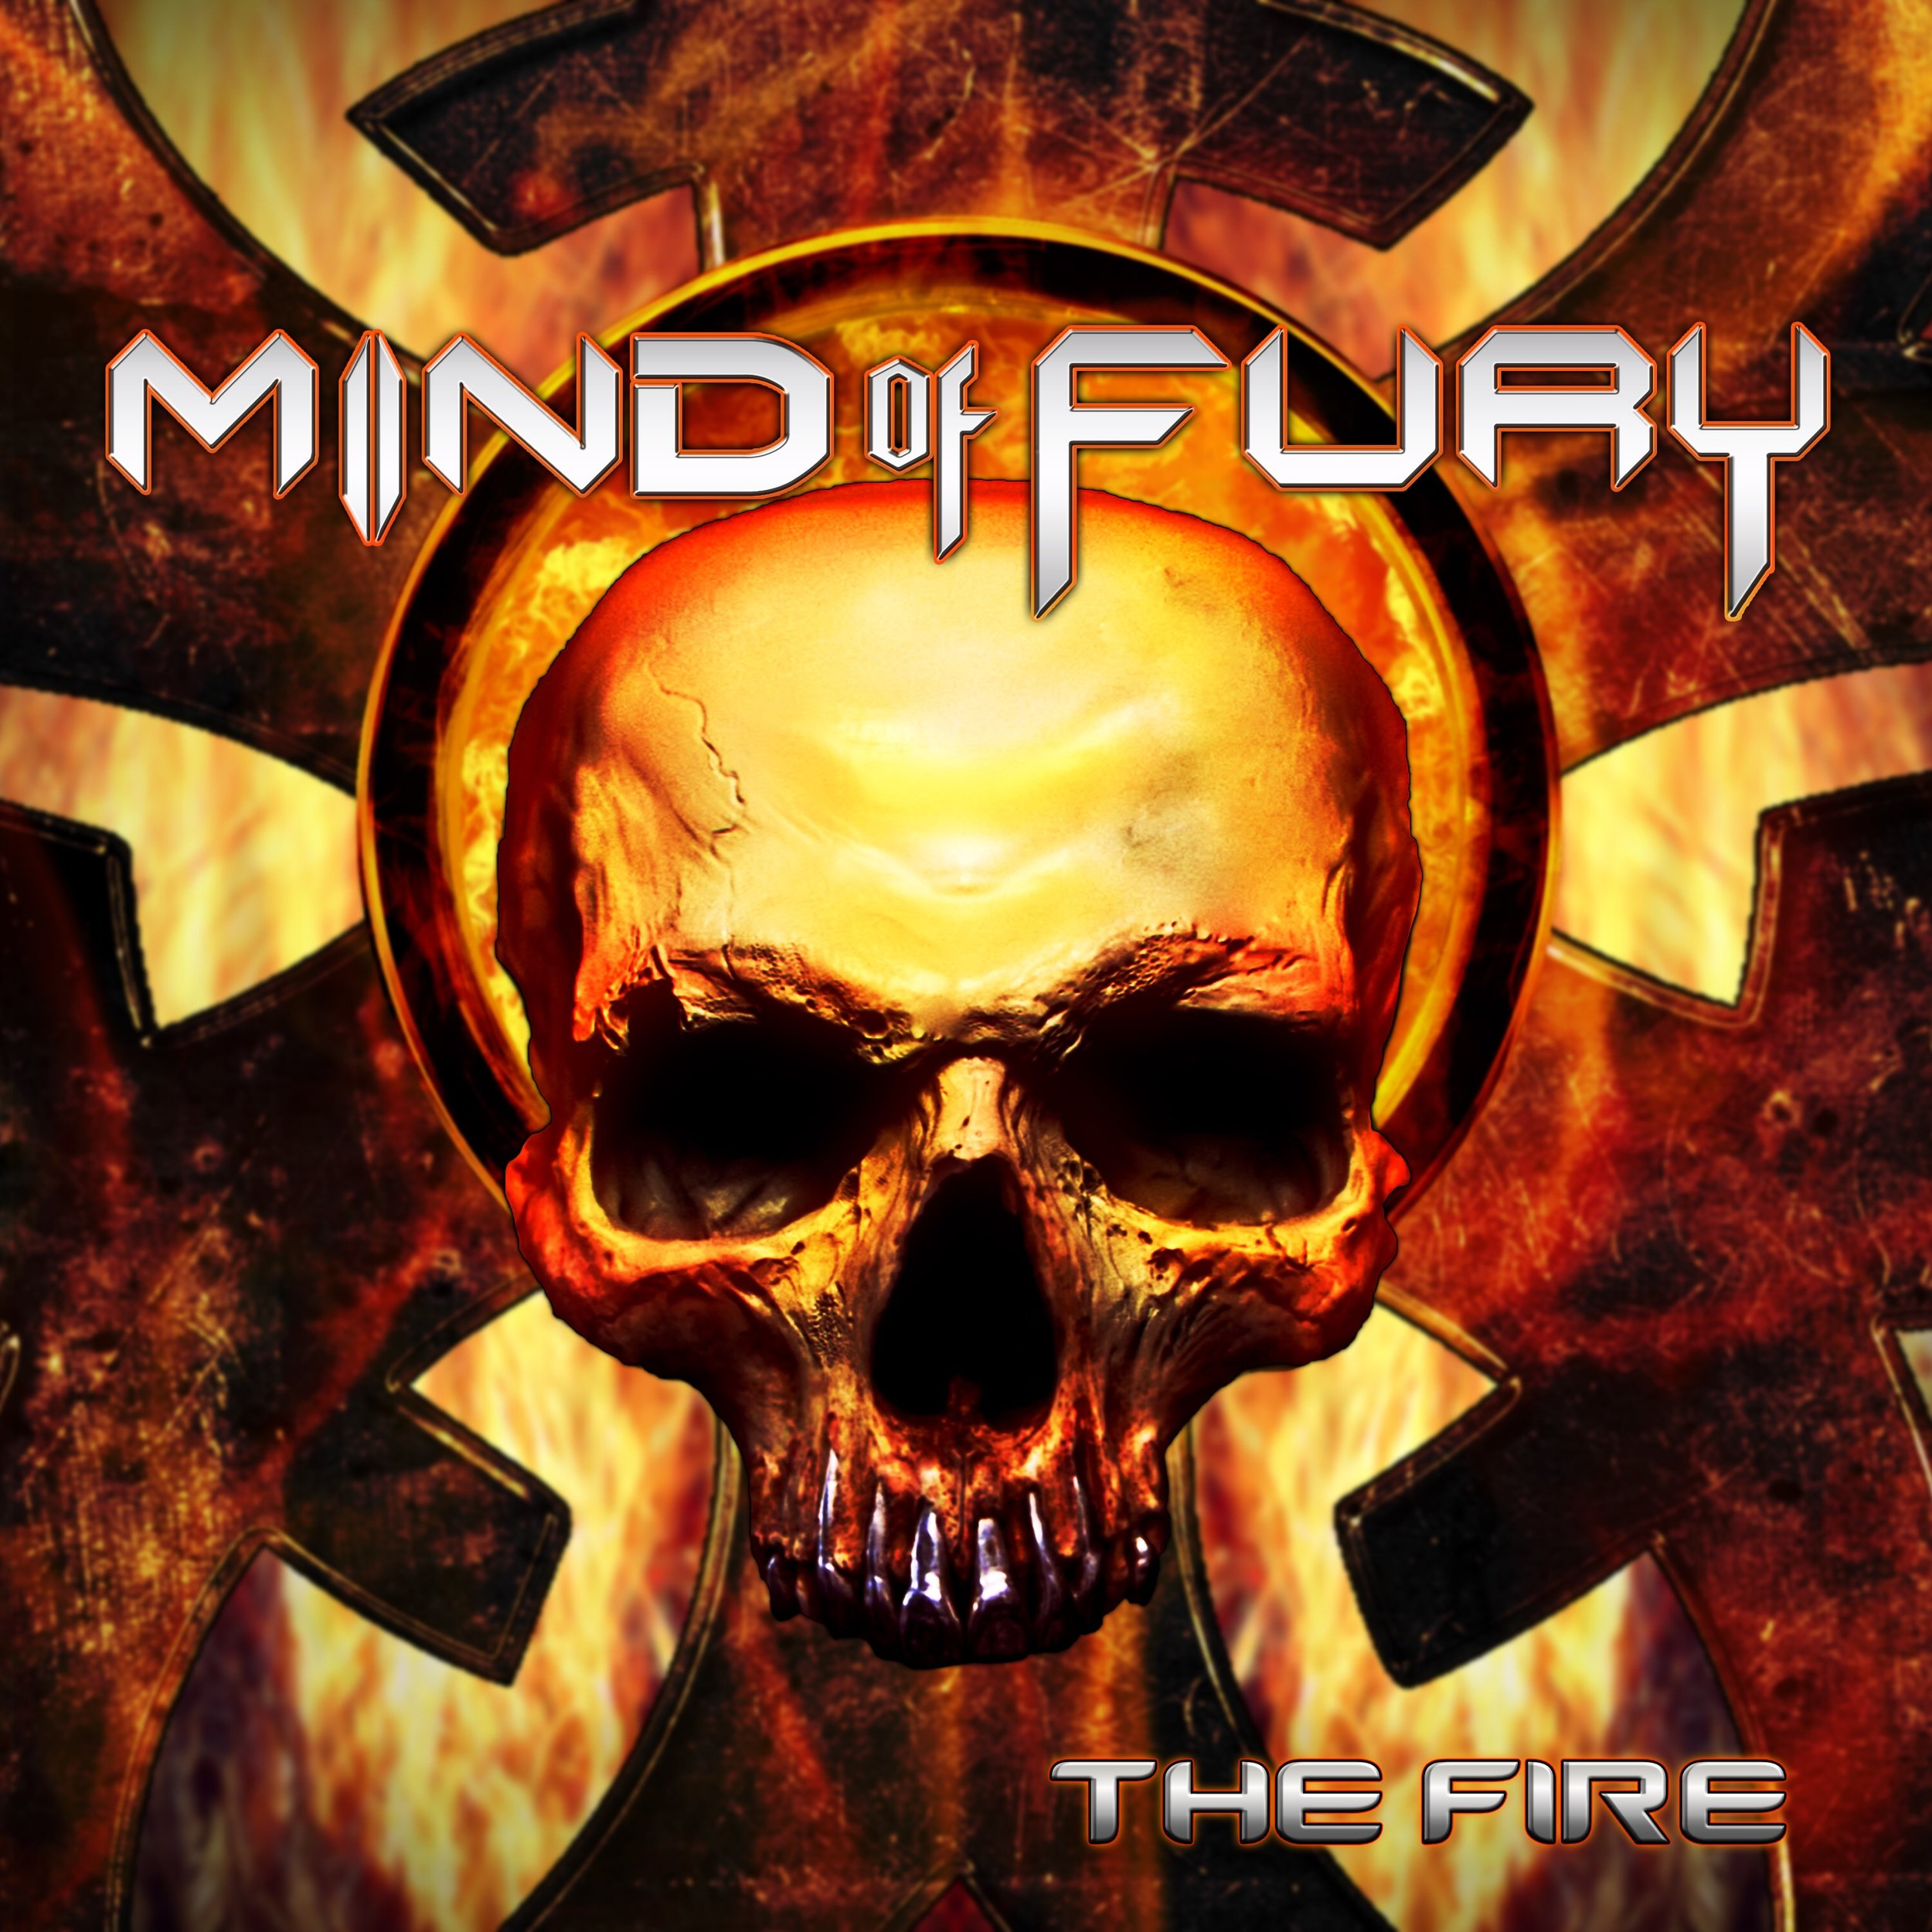 """THE FIRE - Upcoming release from RFL Records 2019Florida's monsoon of Melodic Power Metal, Mind Of Fury is slated to release their brand new album """"The Fire"""" on July 5th via RFL Records with the first single and video """"Let Me Fly"""" released on April 19th."""